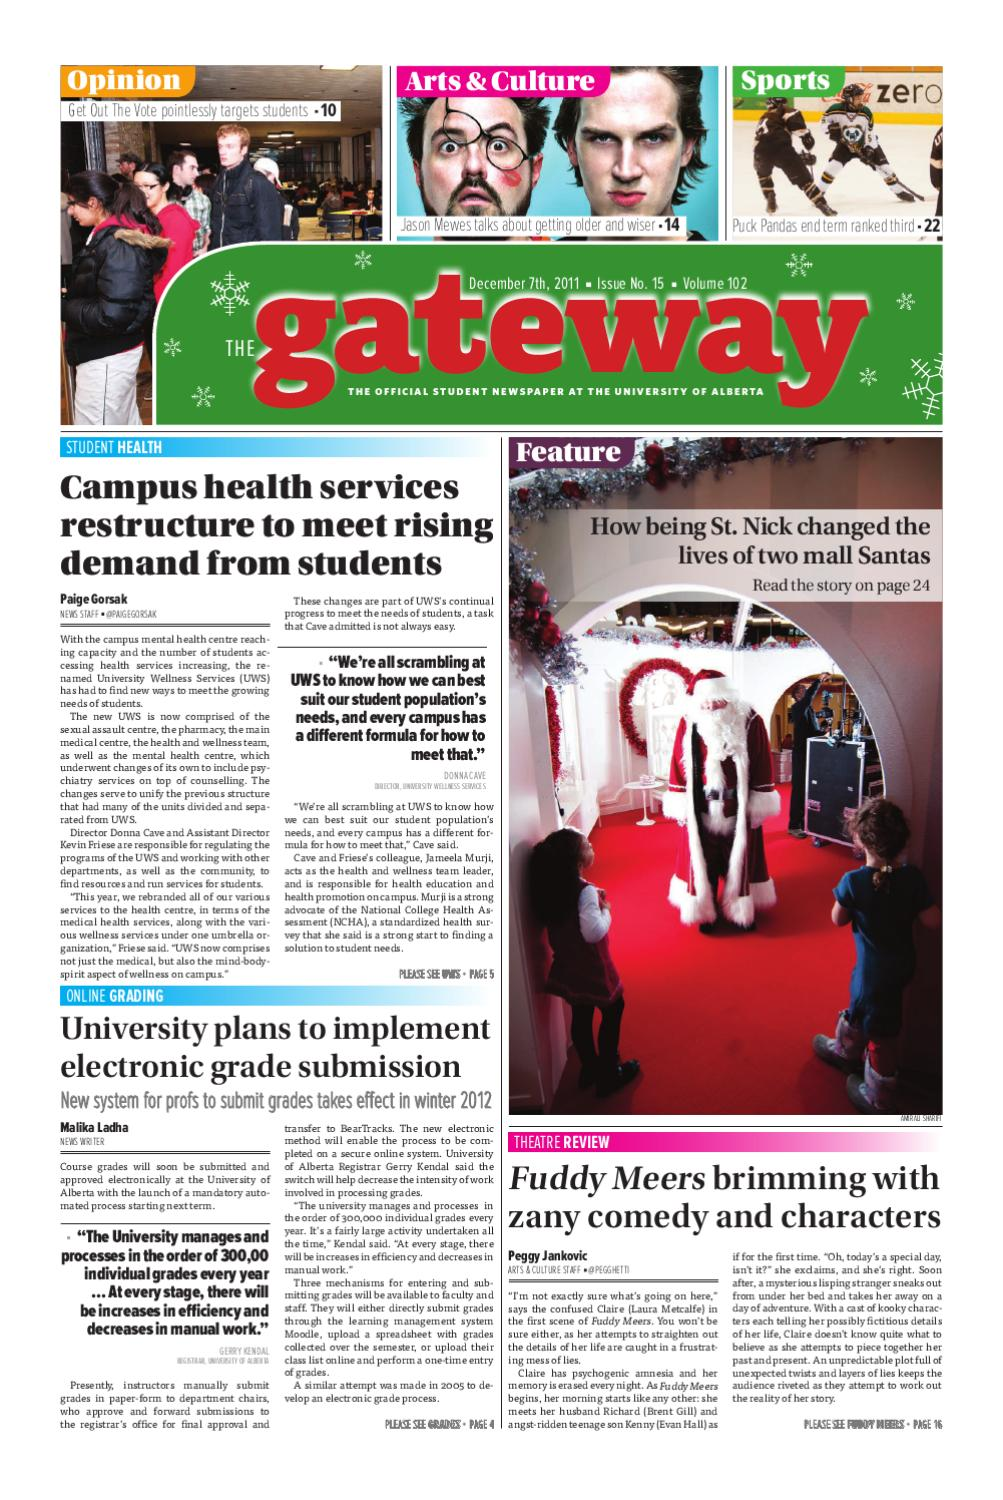 The Gateway: Volume 102, Issue 15 by The Gateway - issuu